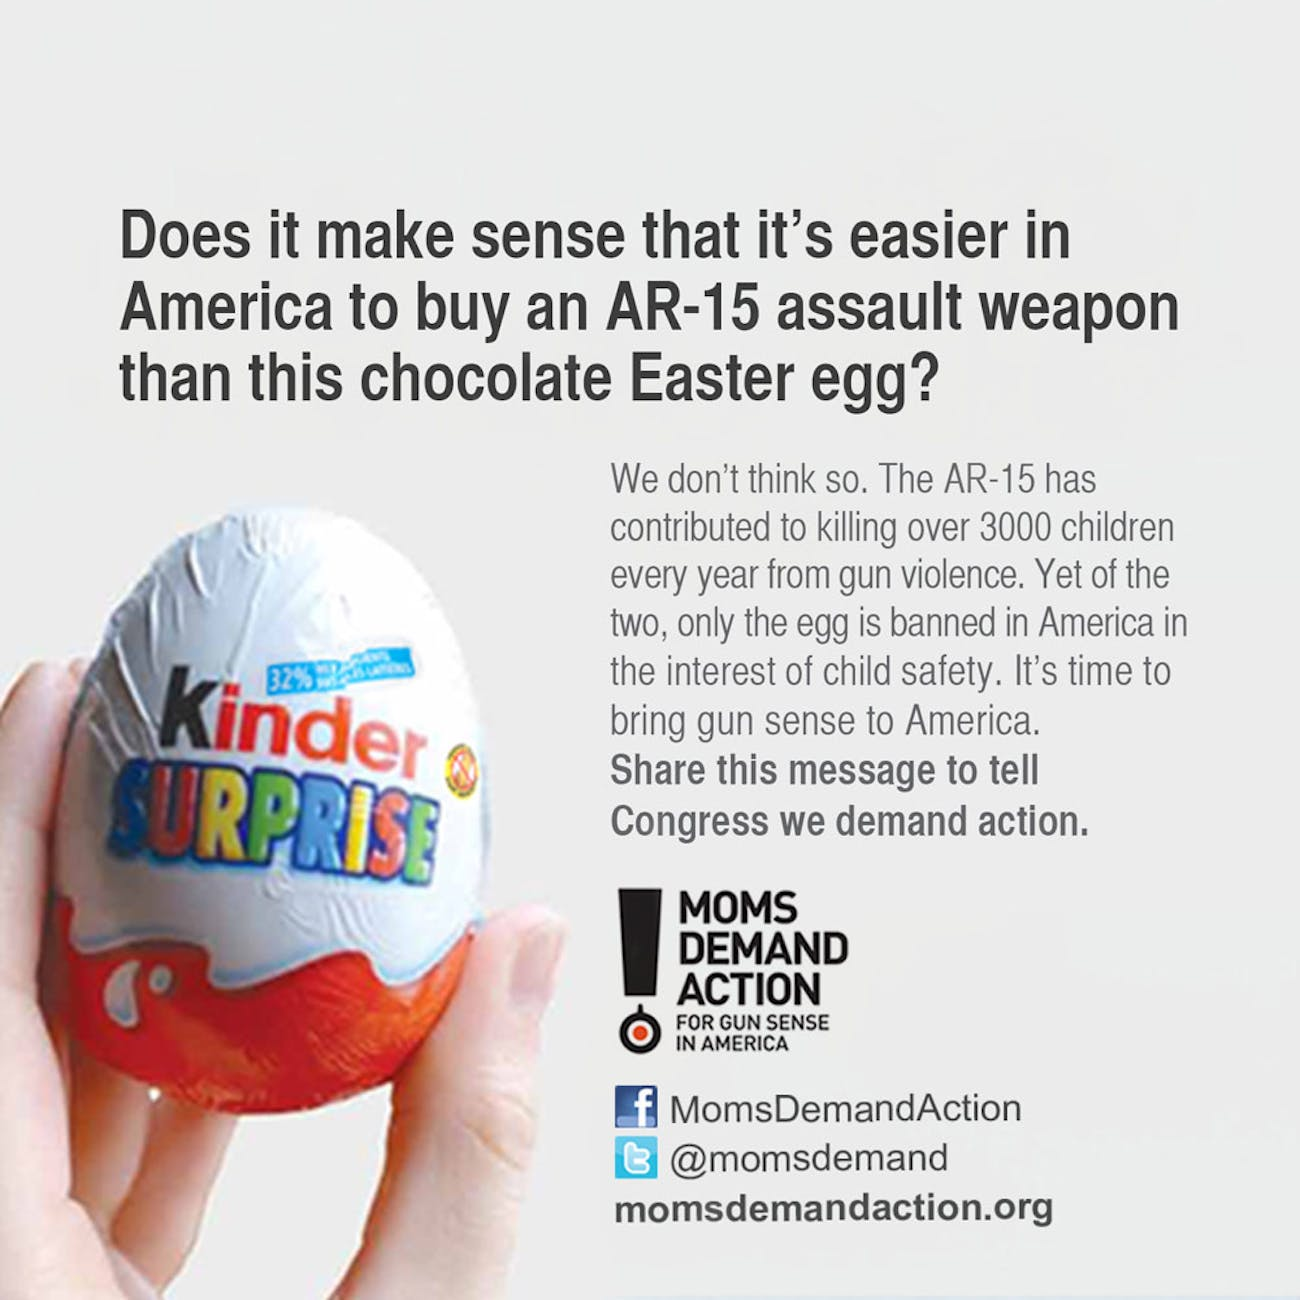 Moms Demand Action Kinder Egg Ban